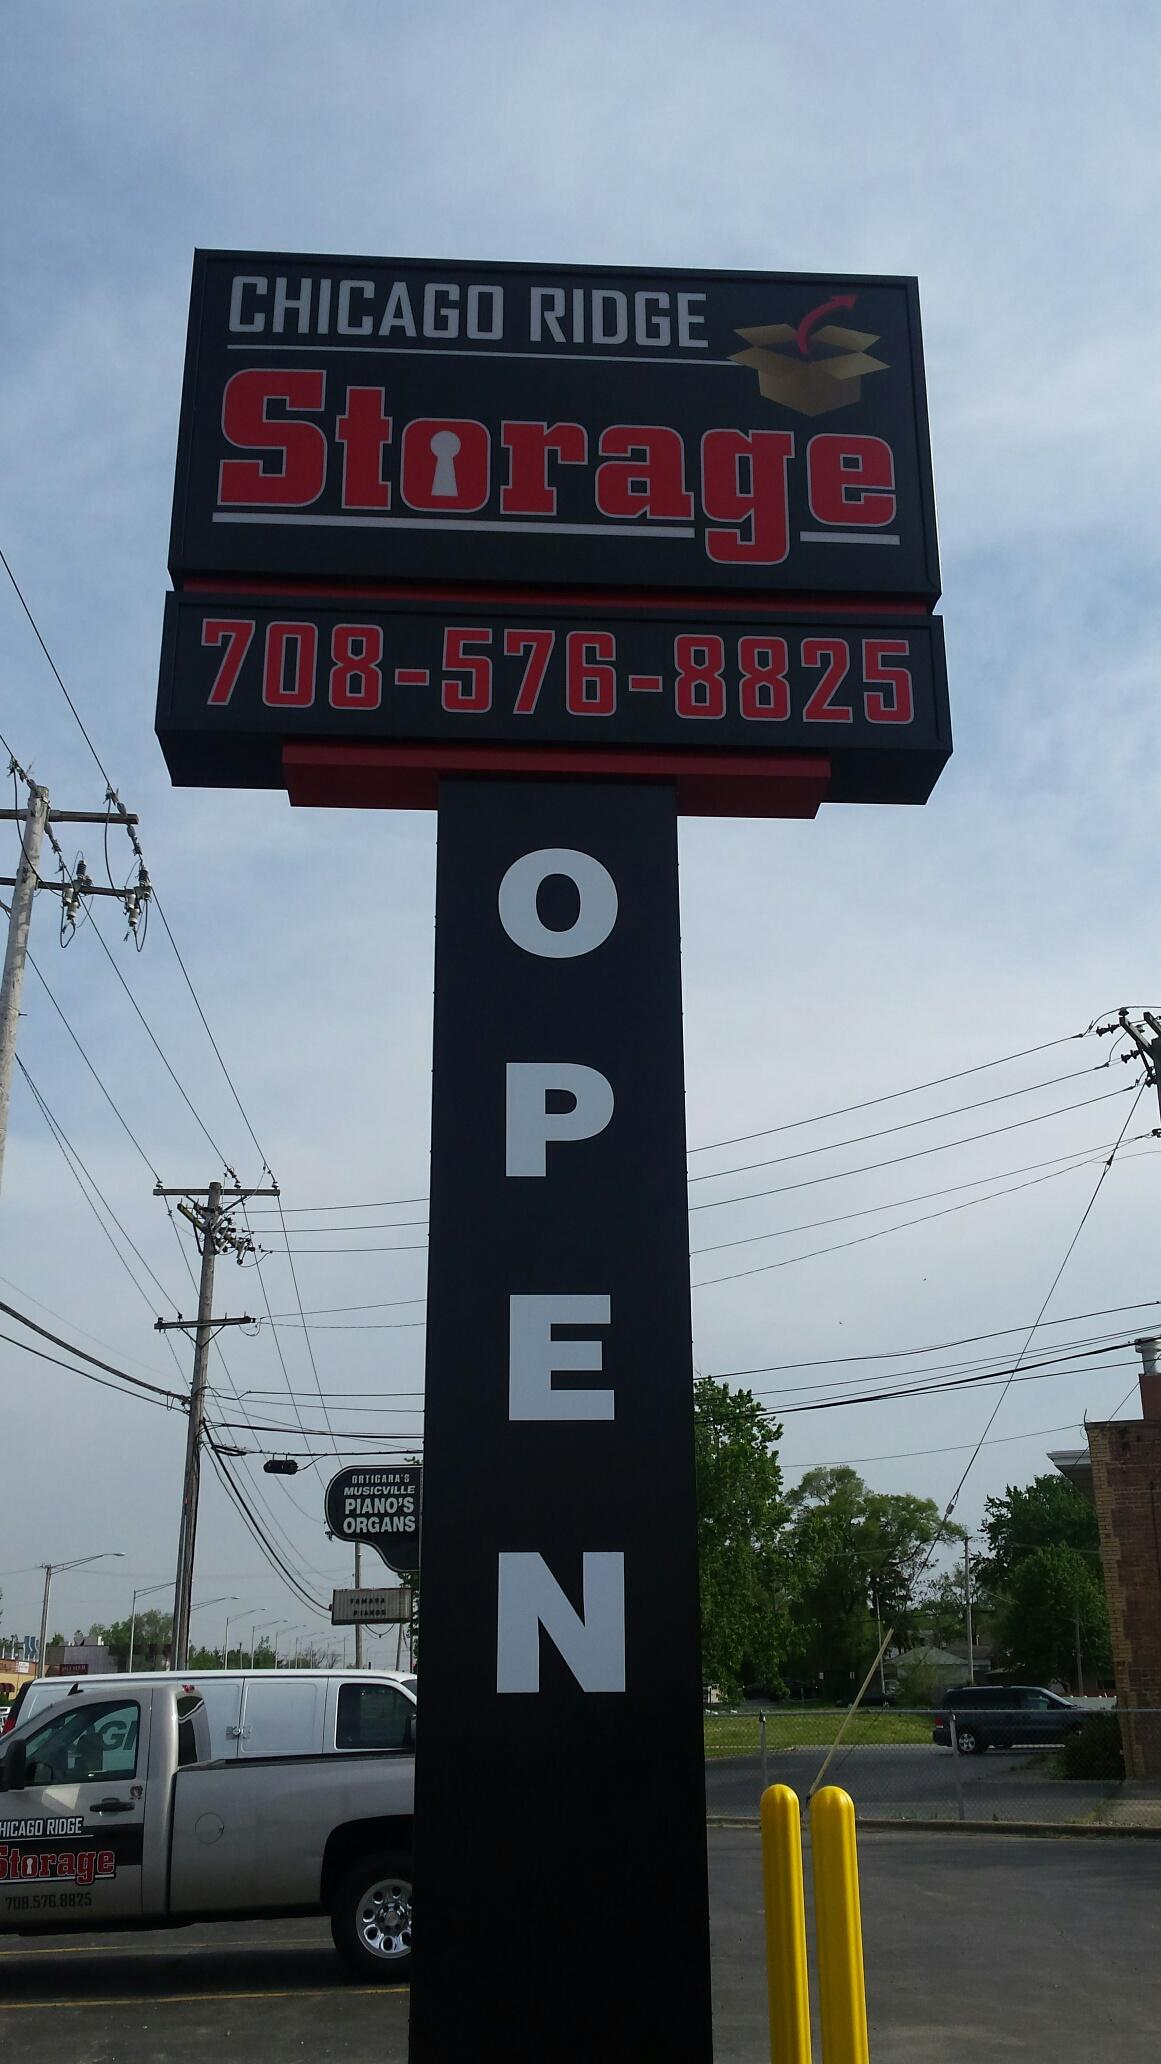 Chicago Ridge Storage is open 7 days a week give us a call!